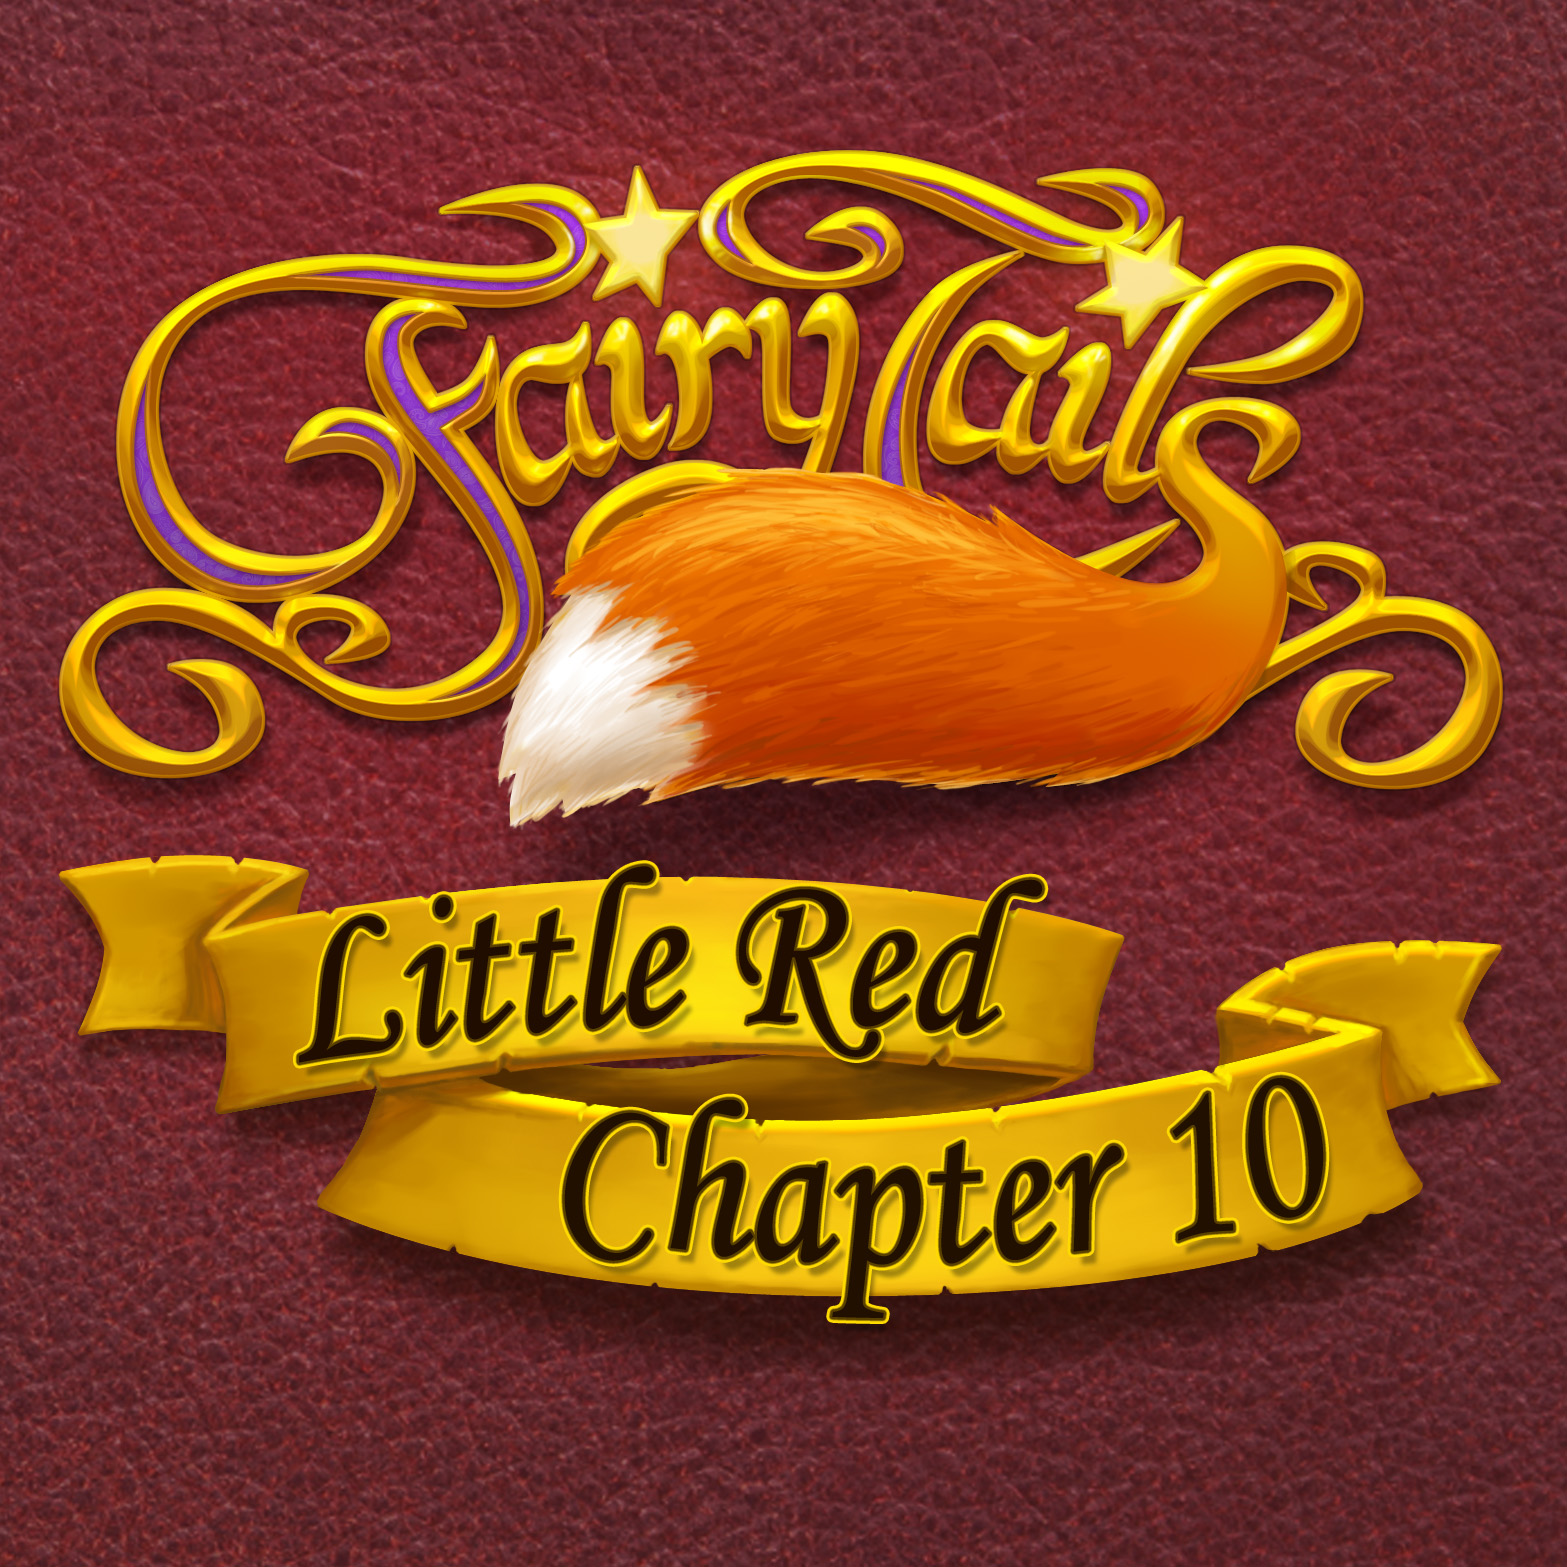 Fairy Tails Little Red Chapter 10